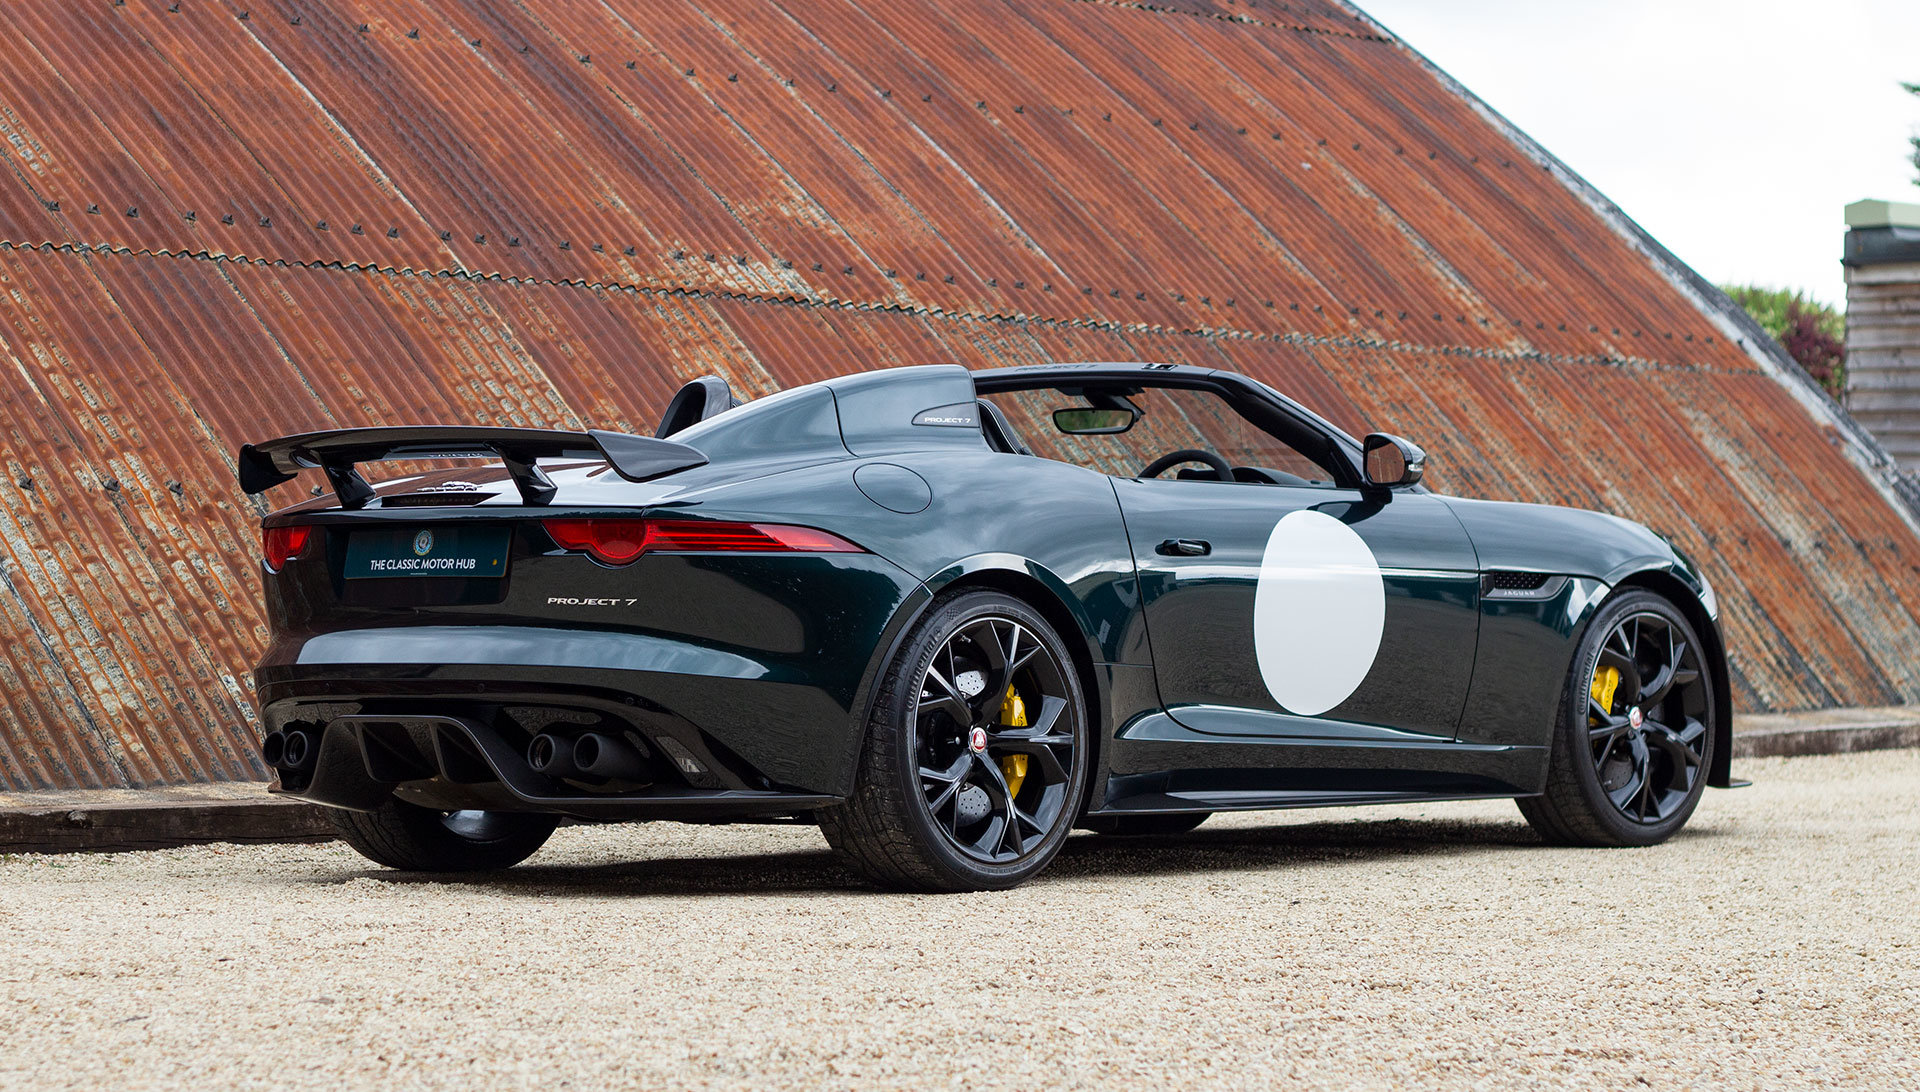 2016 Jaguar Project 7 - 1 of 80 RHD, 1,400 miles SOLD (picture 7 of 24)